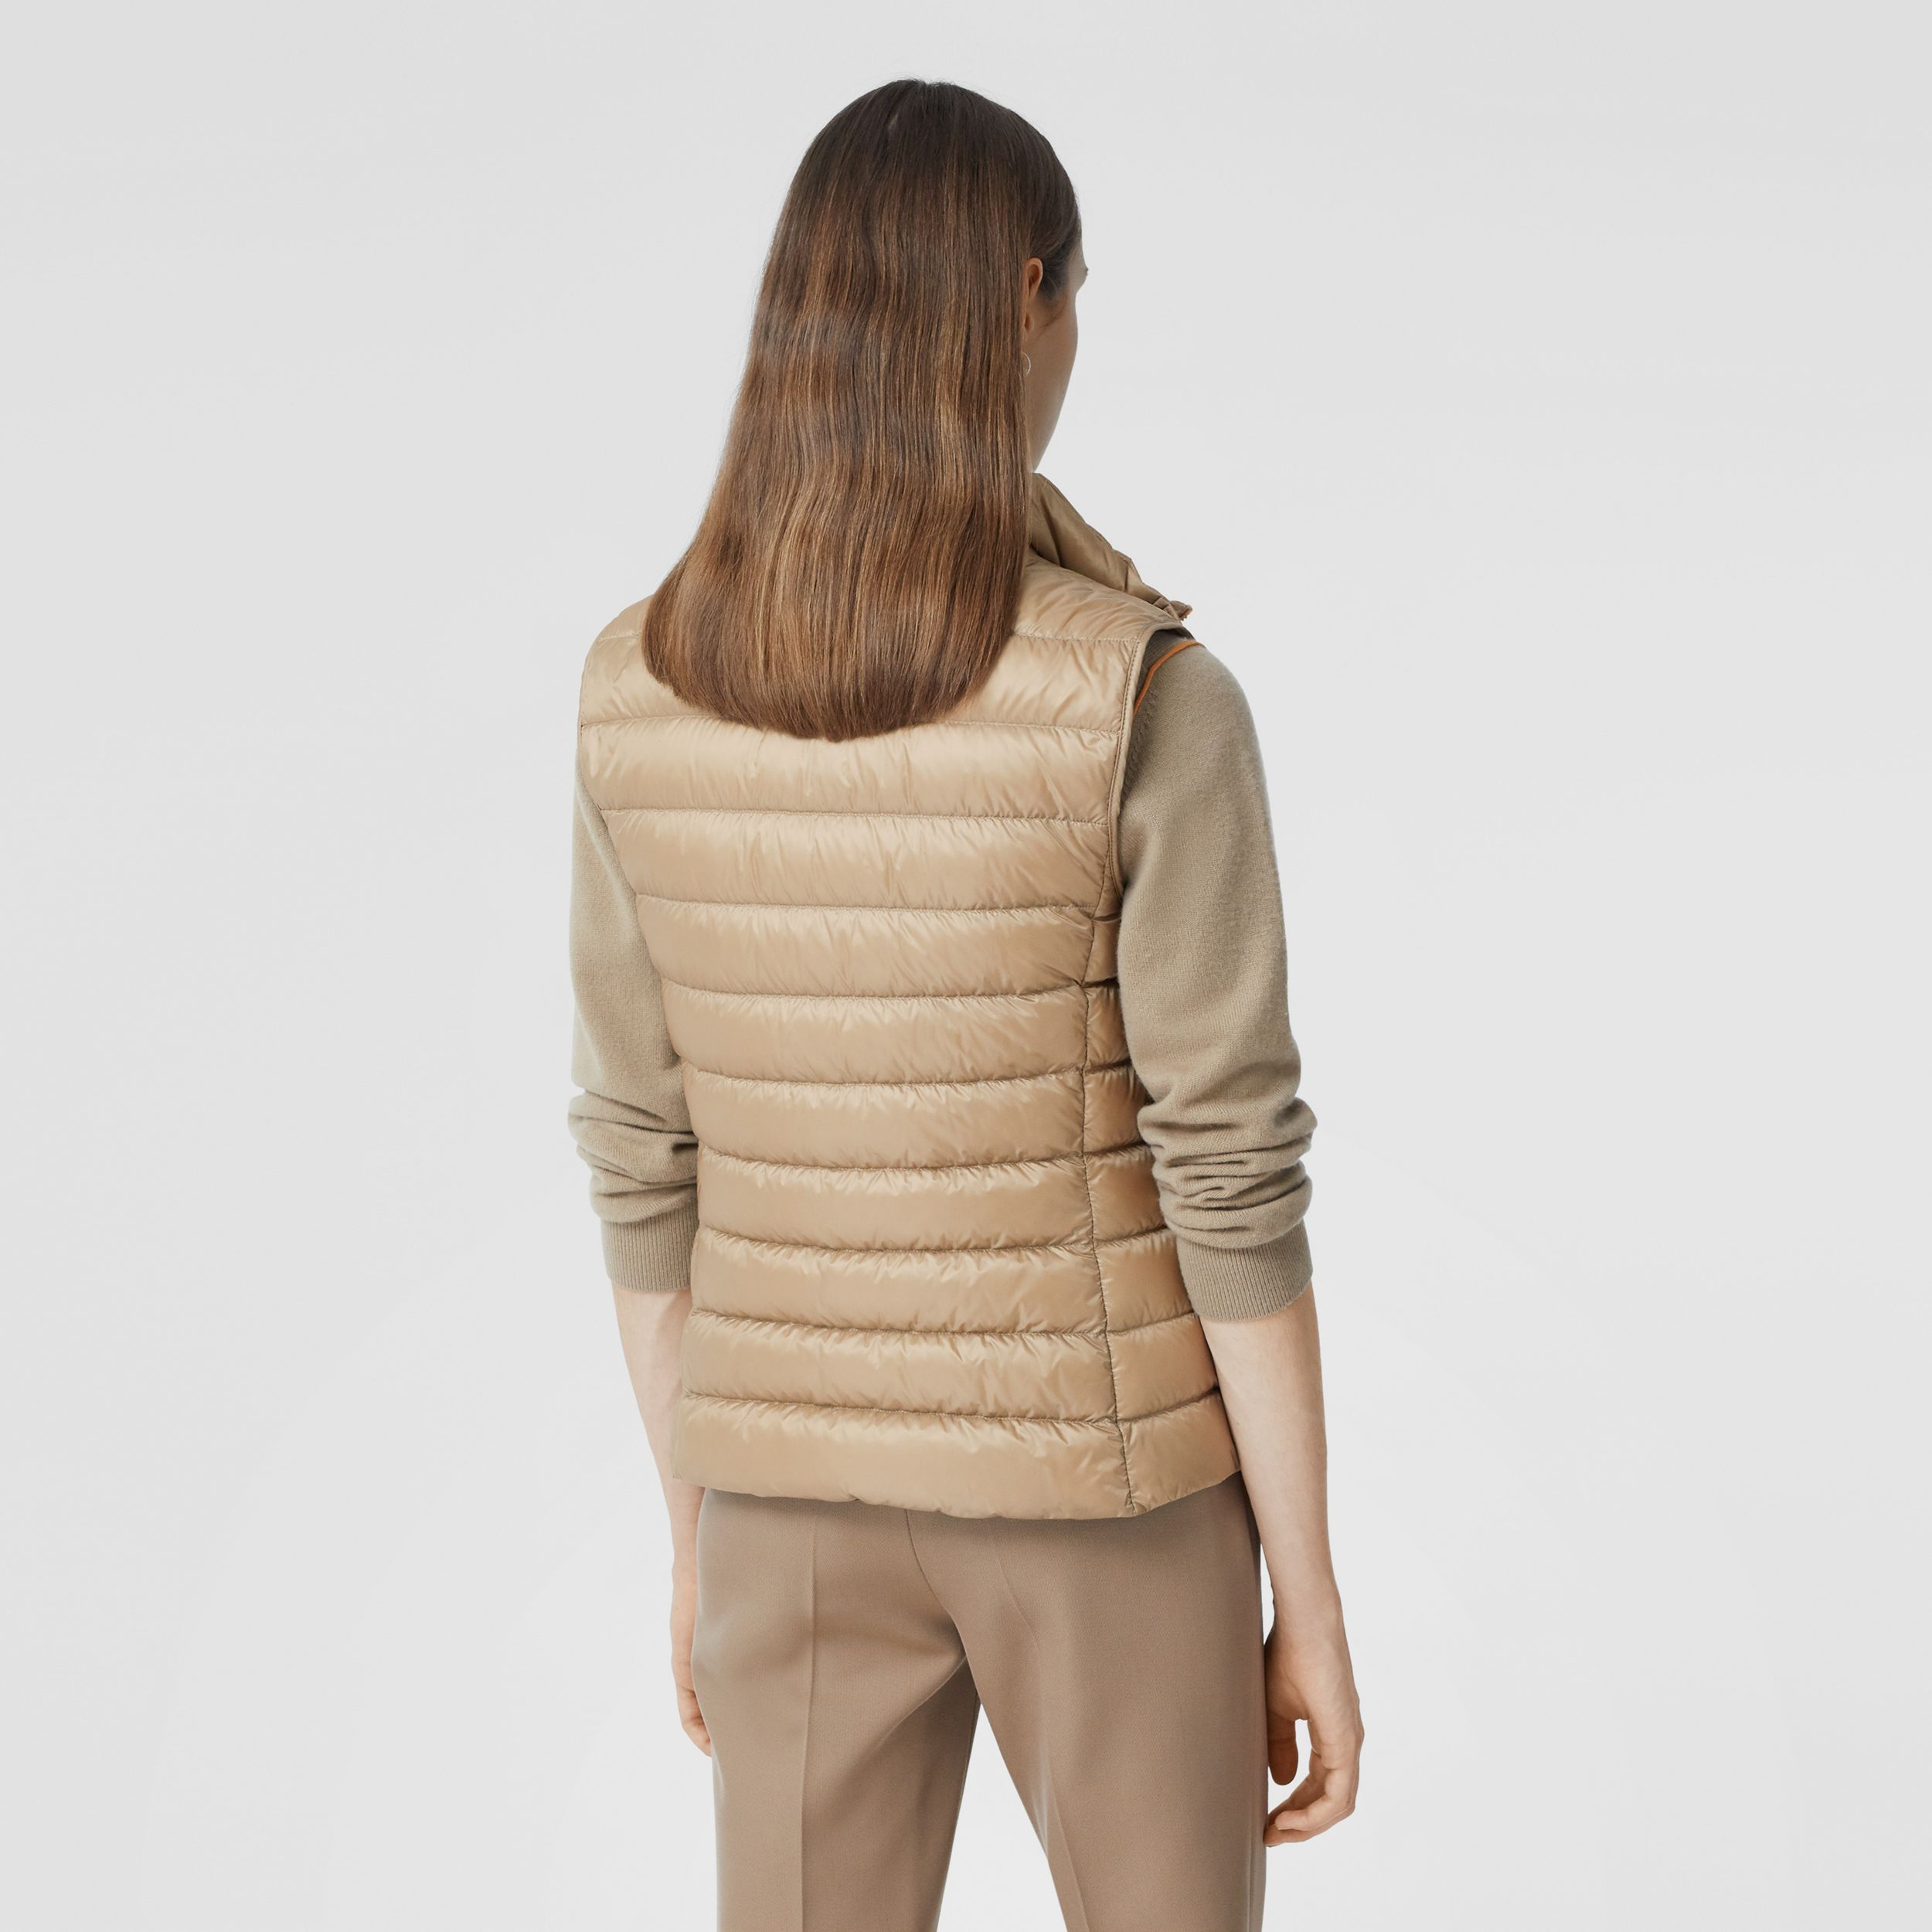 Monogram Print-lined Lightweight Puffer Gilet in Honey - Women | Burberry - 3